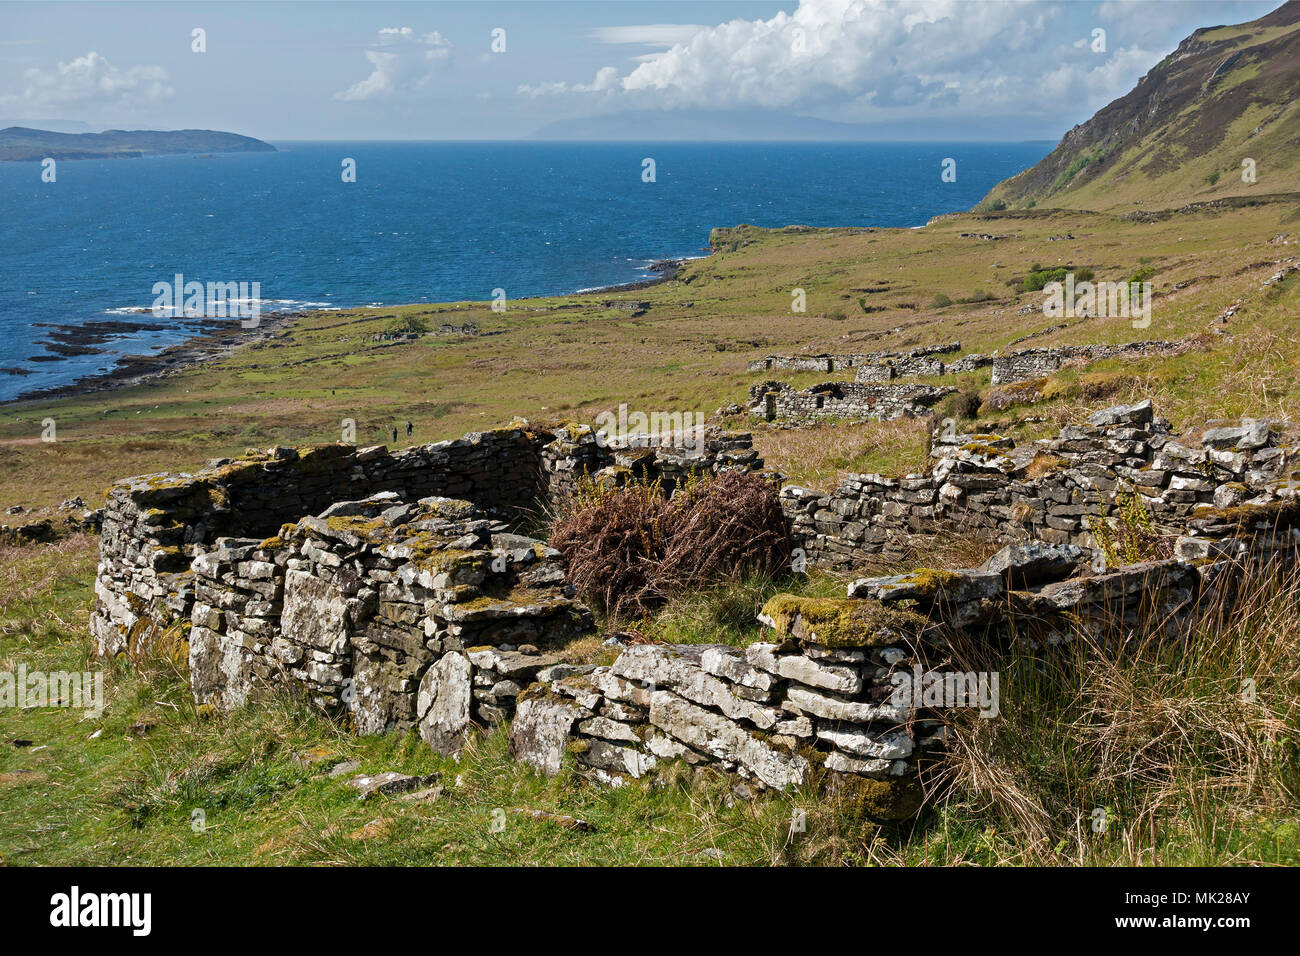 Ruins of old croft houses in the deserted coastal village of Boreraig, Isle of Skye, Scotland, UK - Stock Image